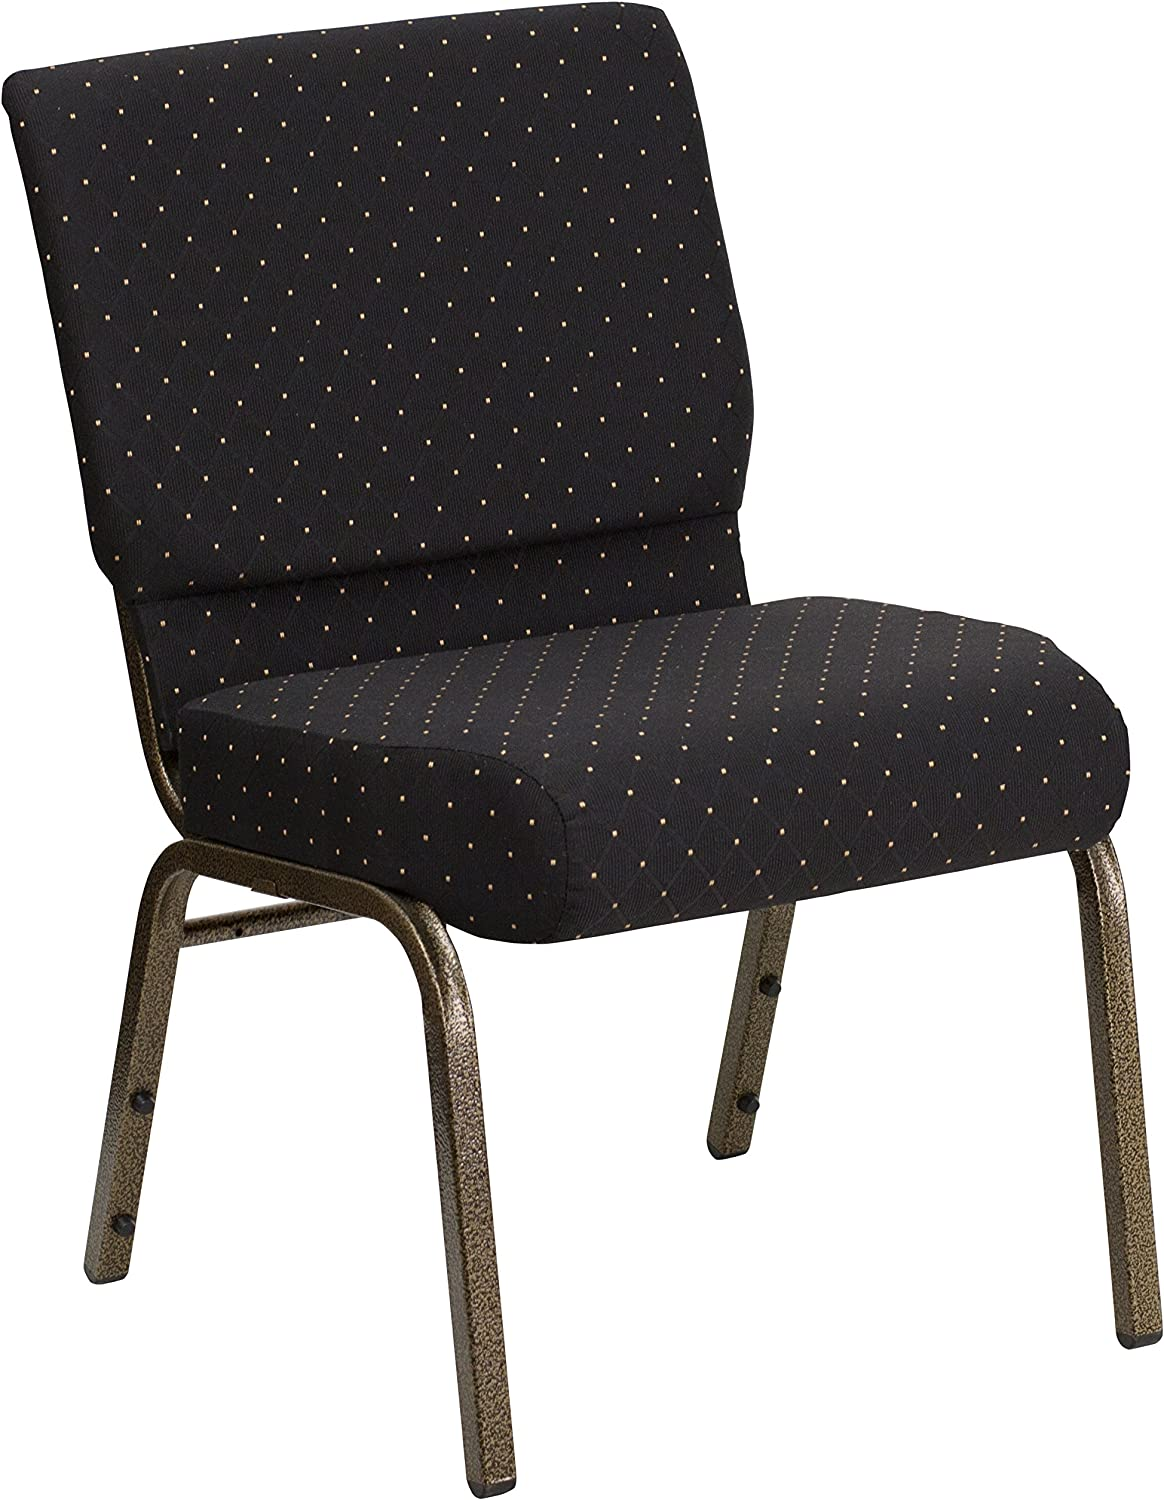 Gold Vein Frame Flash Furniture 4 Pk HERCULES Series 21W Stacking Church Chair in Black Dot Patterned Fabric